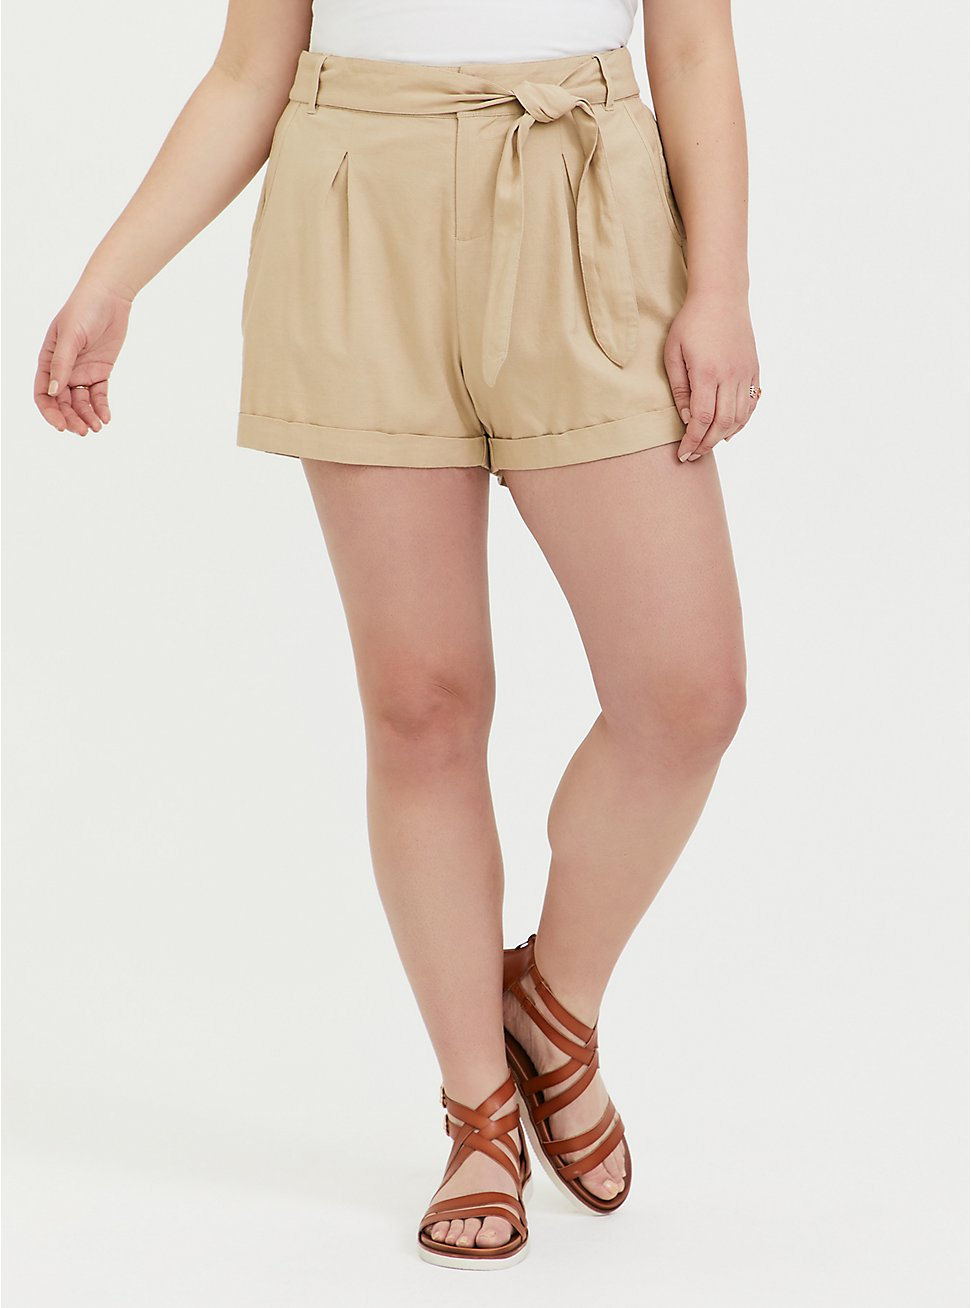 Self Tie Short Short - Linen Beige, TAN/BEIGE, hi-res